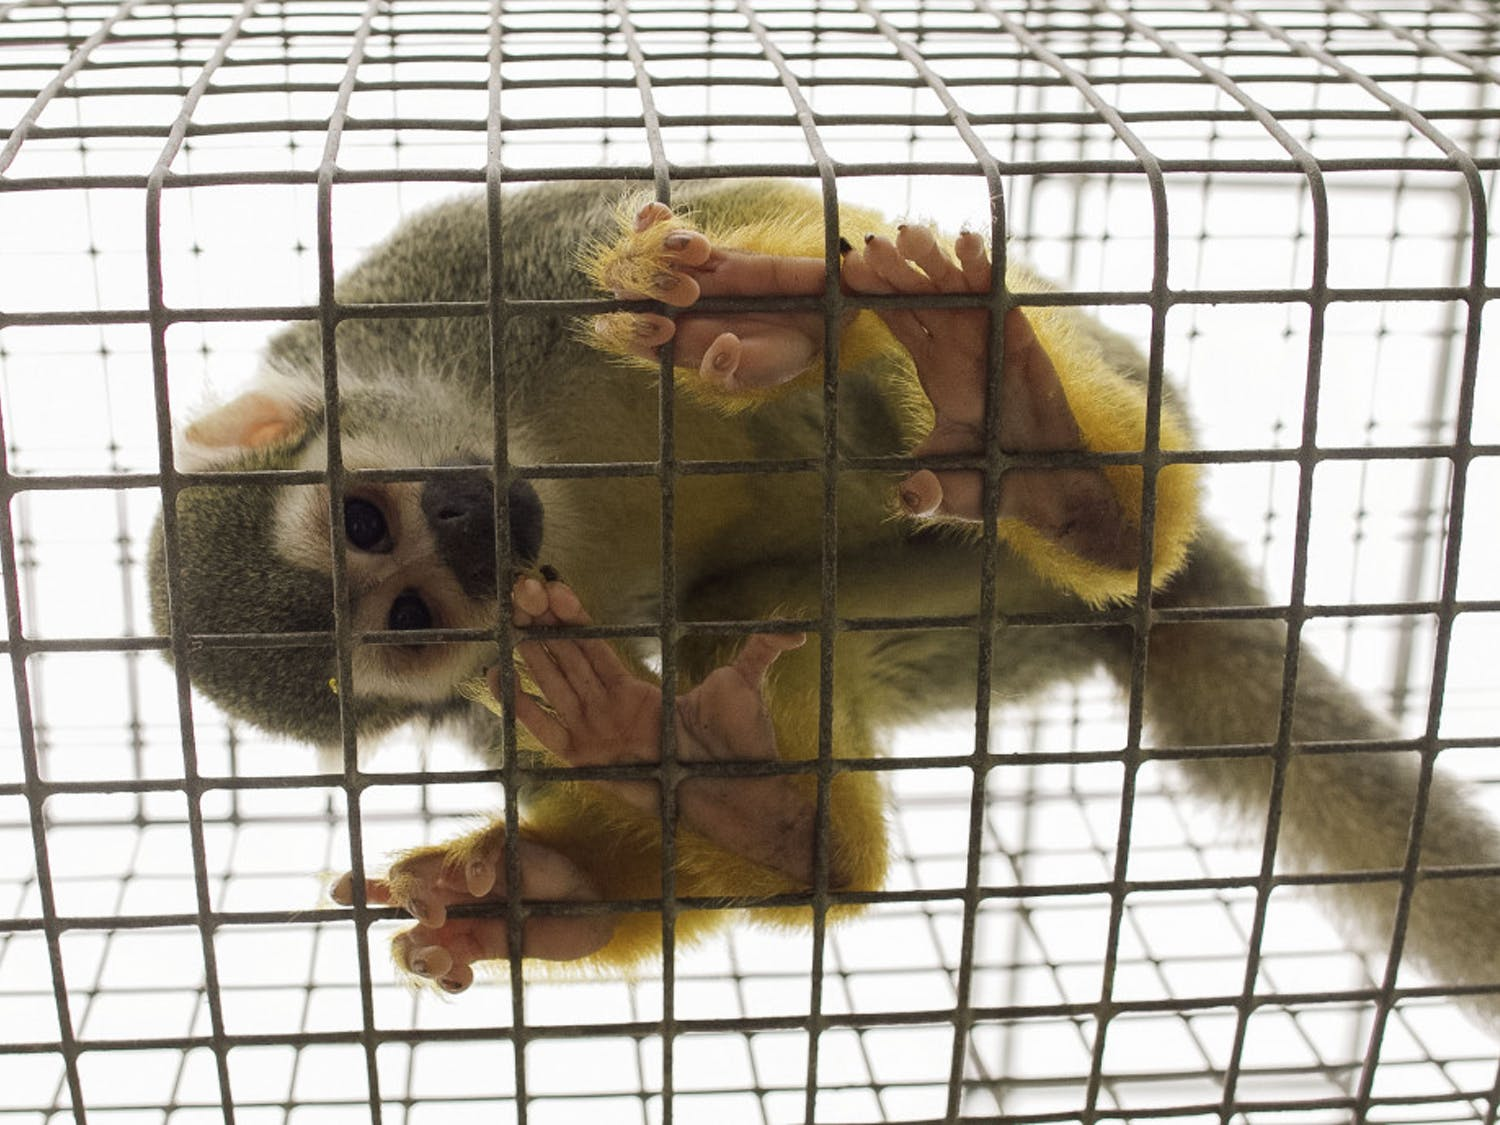 The Alachua County Jungle Friends Primate Sanctuary nonprofit provides a home for New World monkeys retired from lab research or ex-pets.Volunteers are invited to help in the weekly cleanups of the sanctuary.